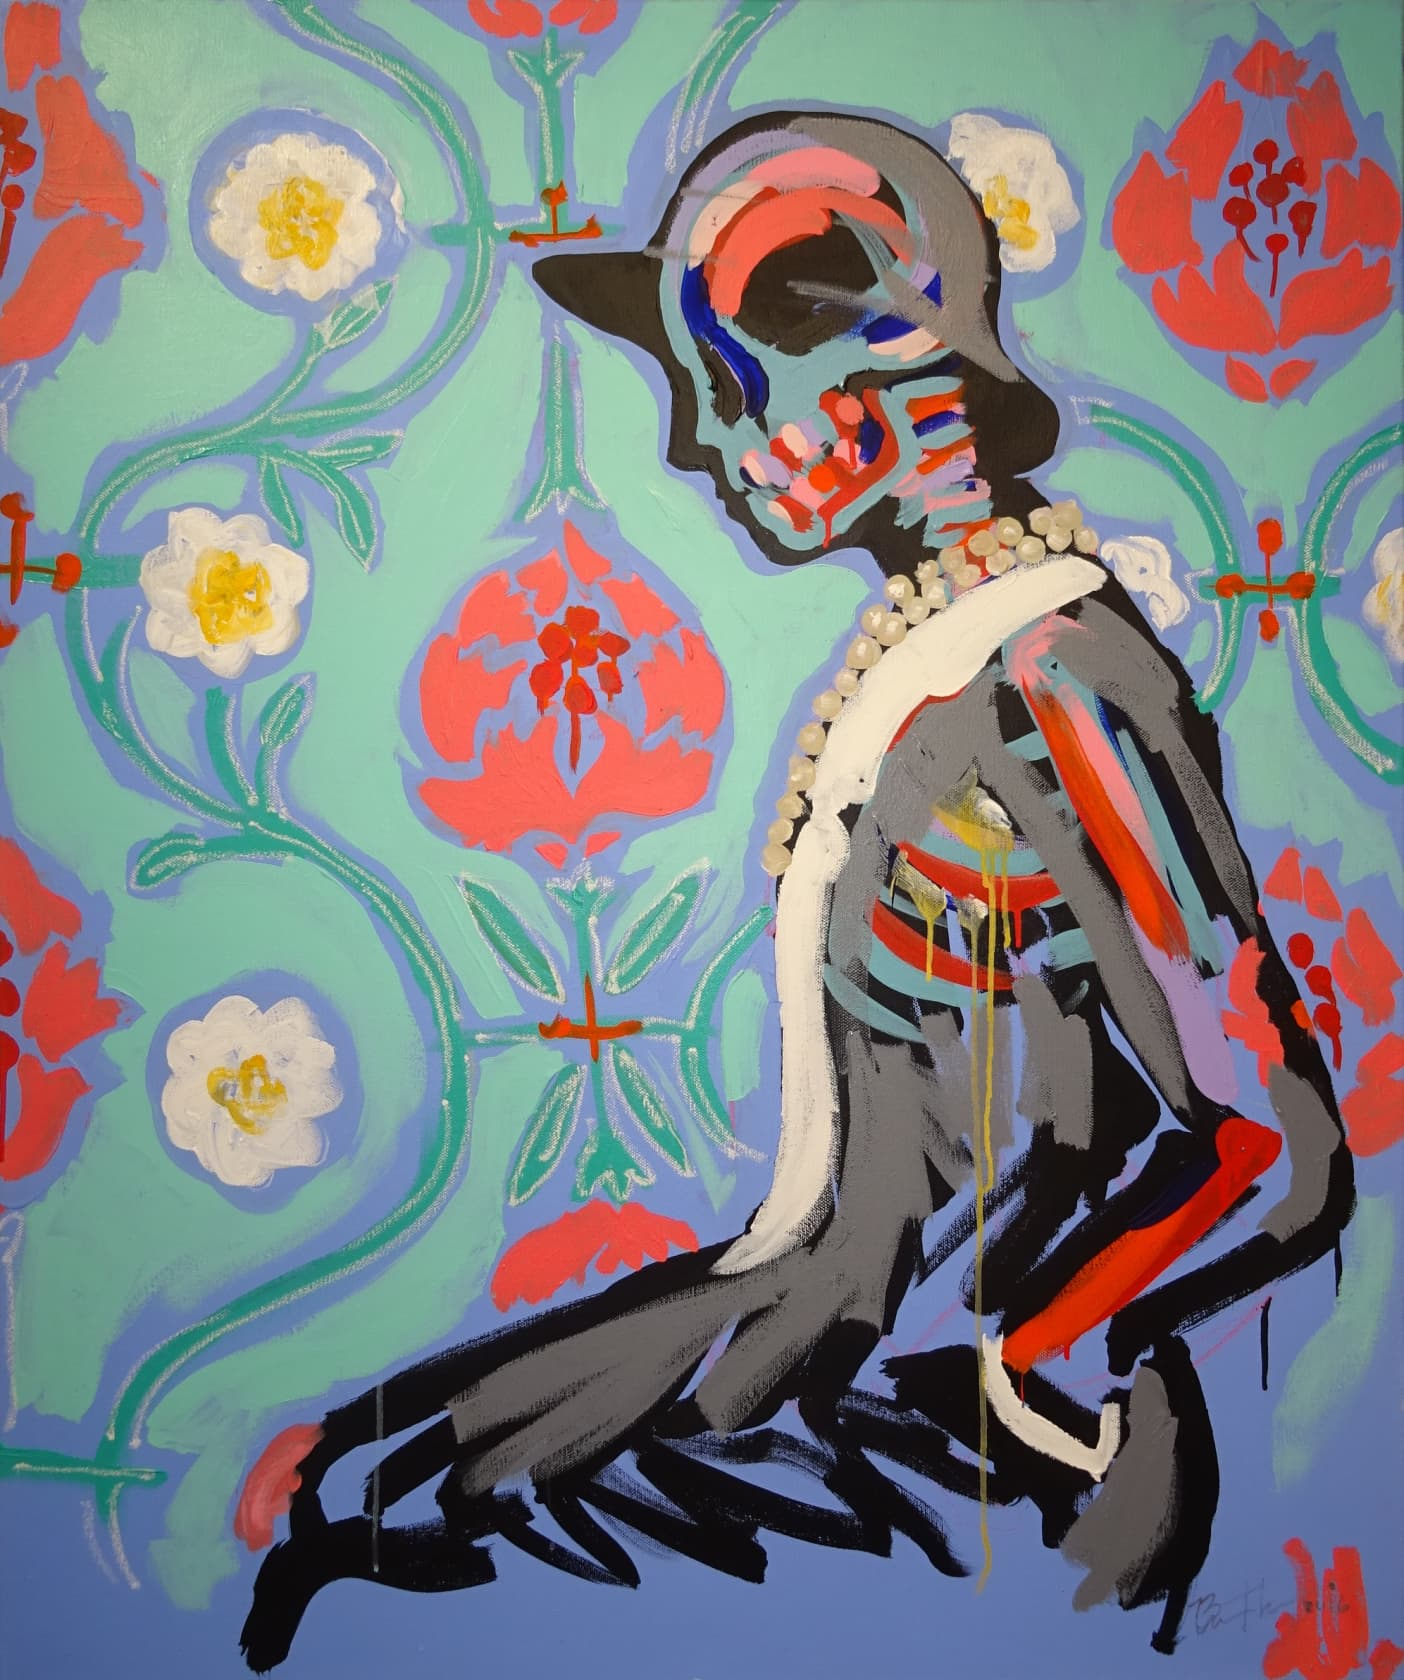 Bradley Theodore, Coco in Flowers, 2016